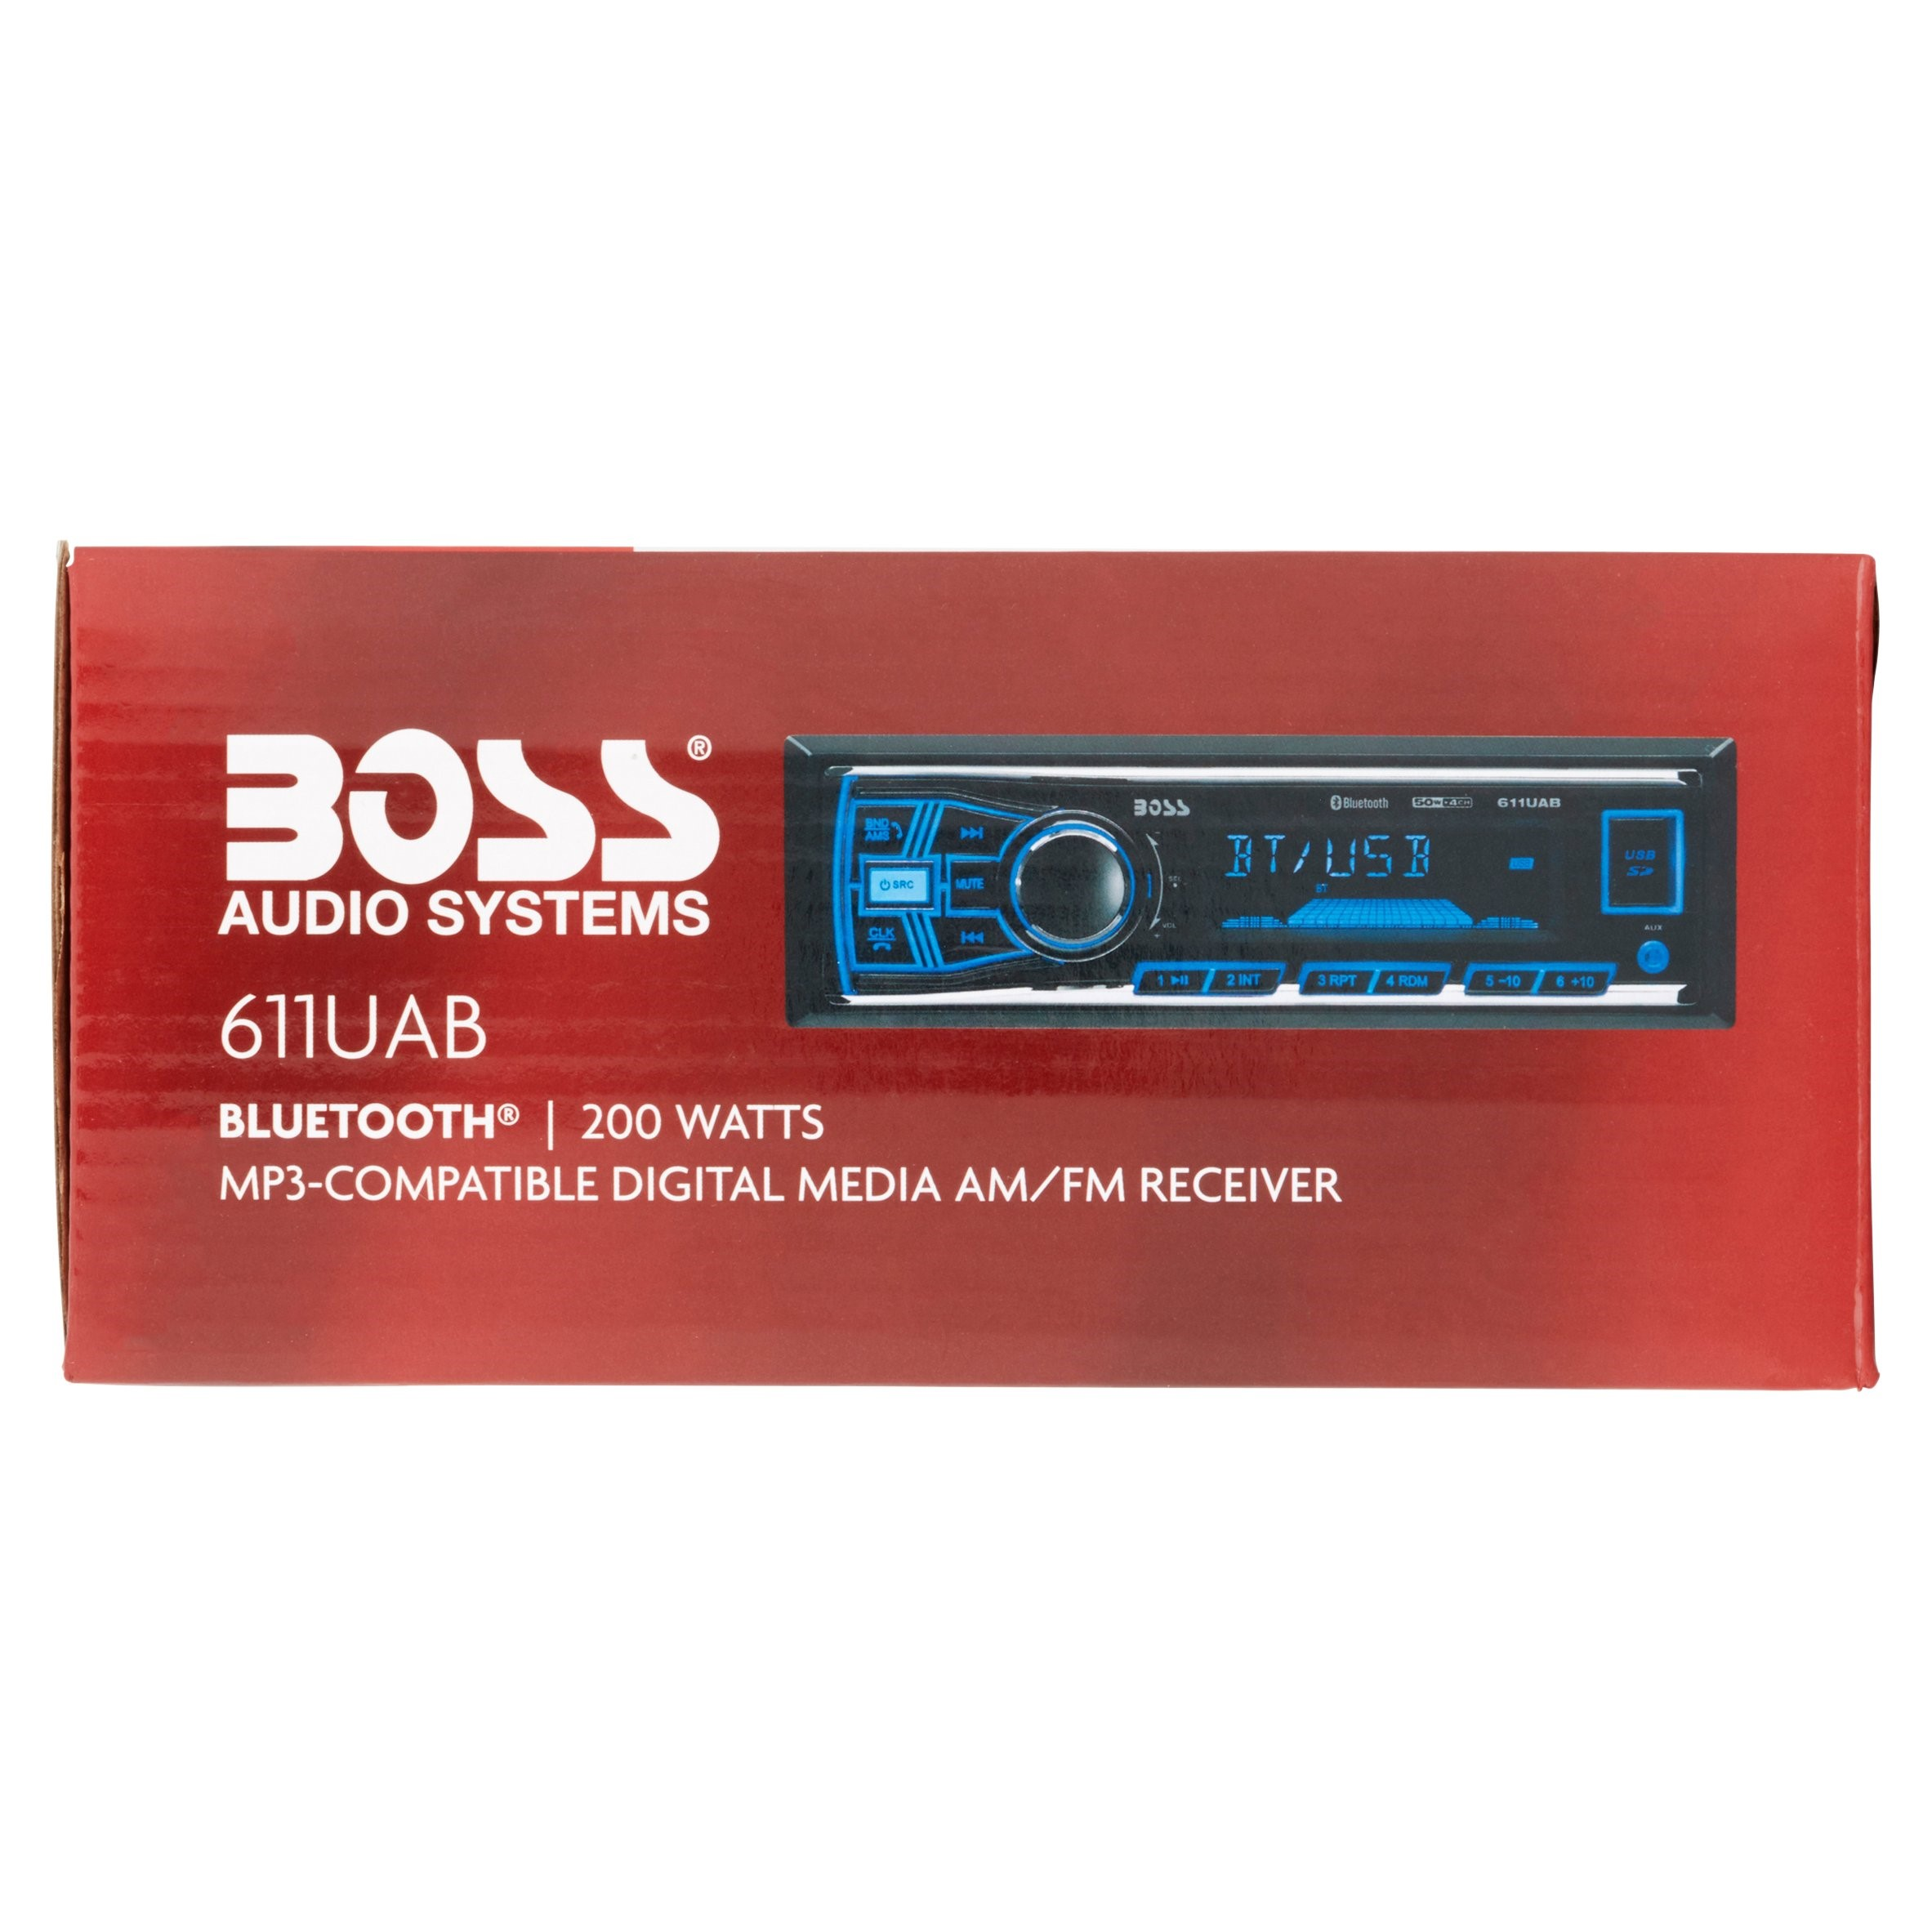 Boss 611UAB Boss Audio 611UAB Single-DIN MECH-LESS Receiver, Bluetooth - In-dash - MP3, WMA - AM, FM - 12, 18 x AM, FM Preset - SD - Bluetooth - USB - Auxiliary Input